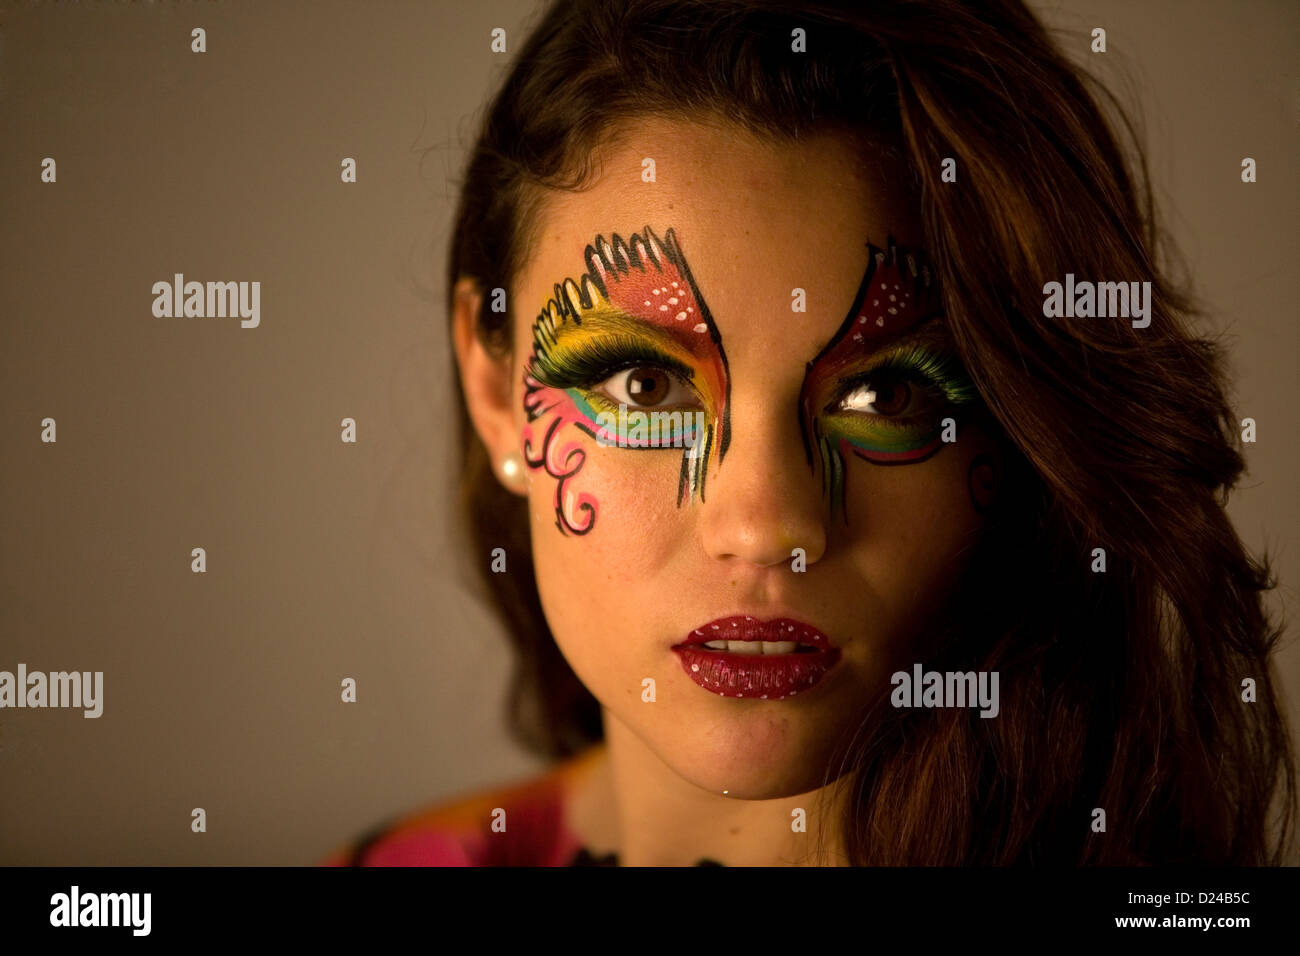 Model Poses During Body Art Fashion High Resolution Stock Photography And Images Alamy